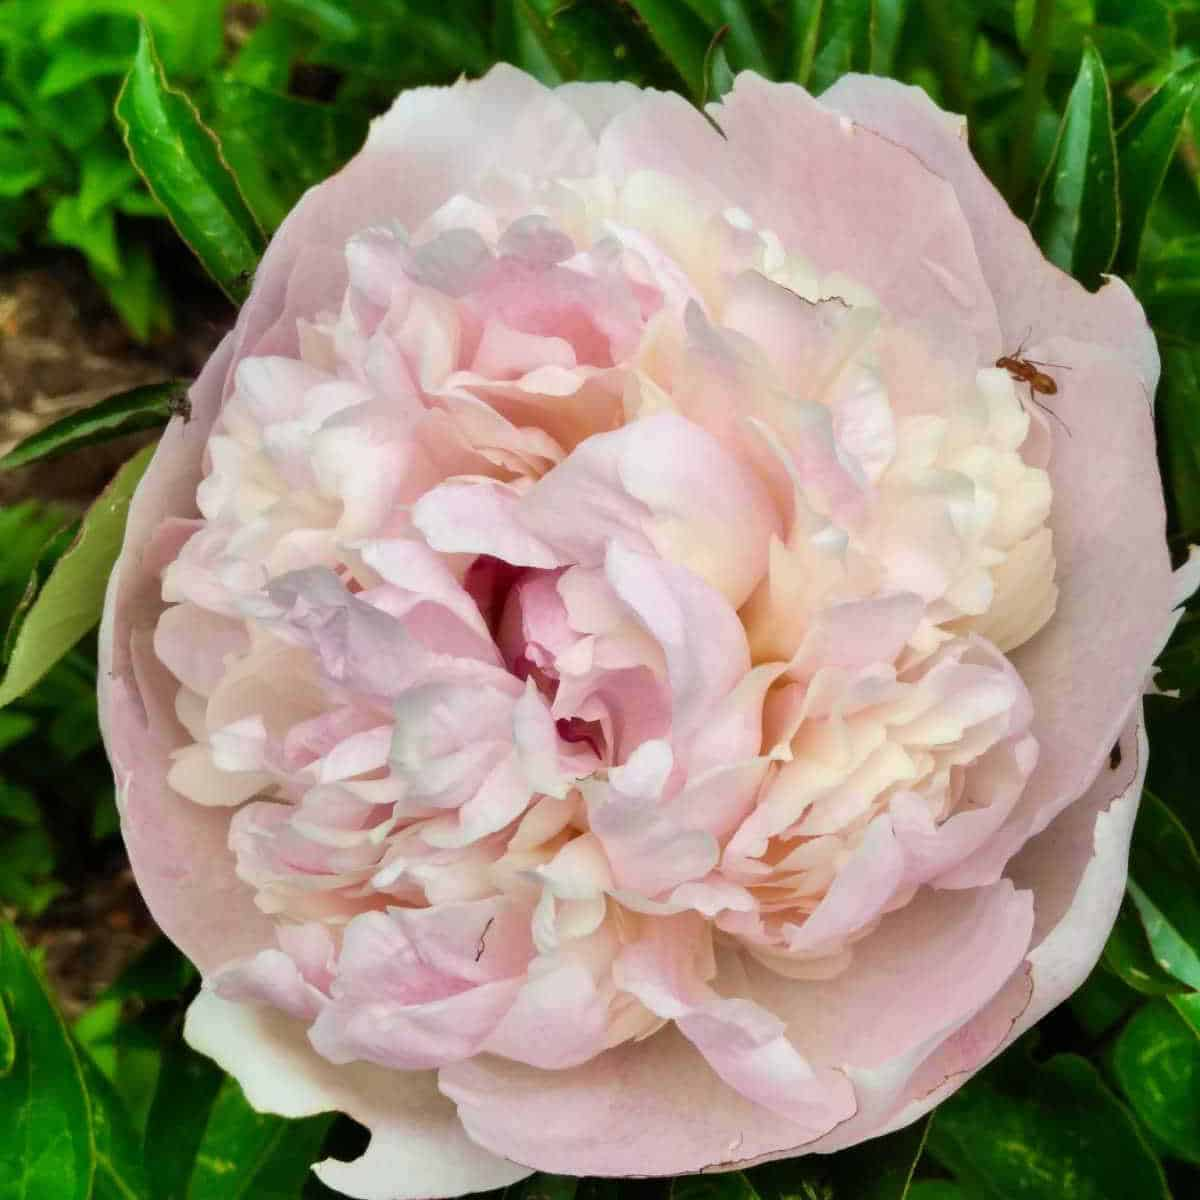 a closeup of a pink peony flower and an ant